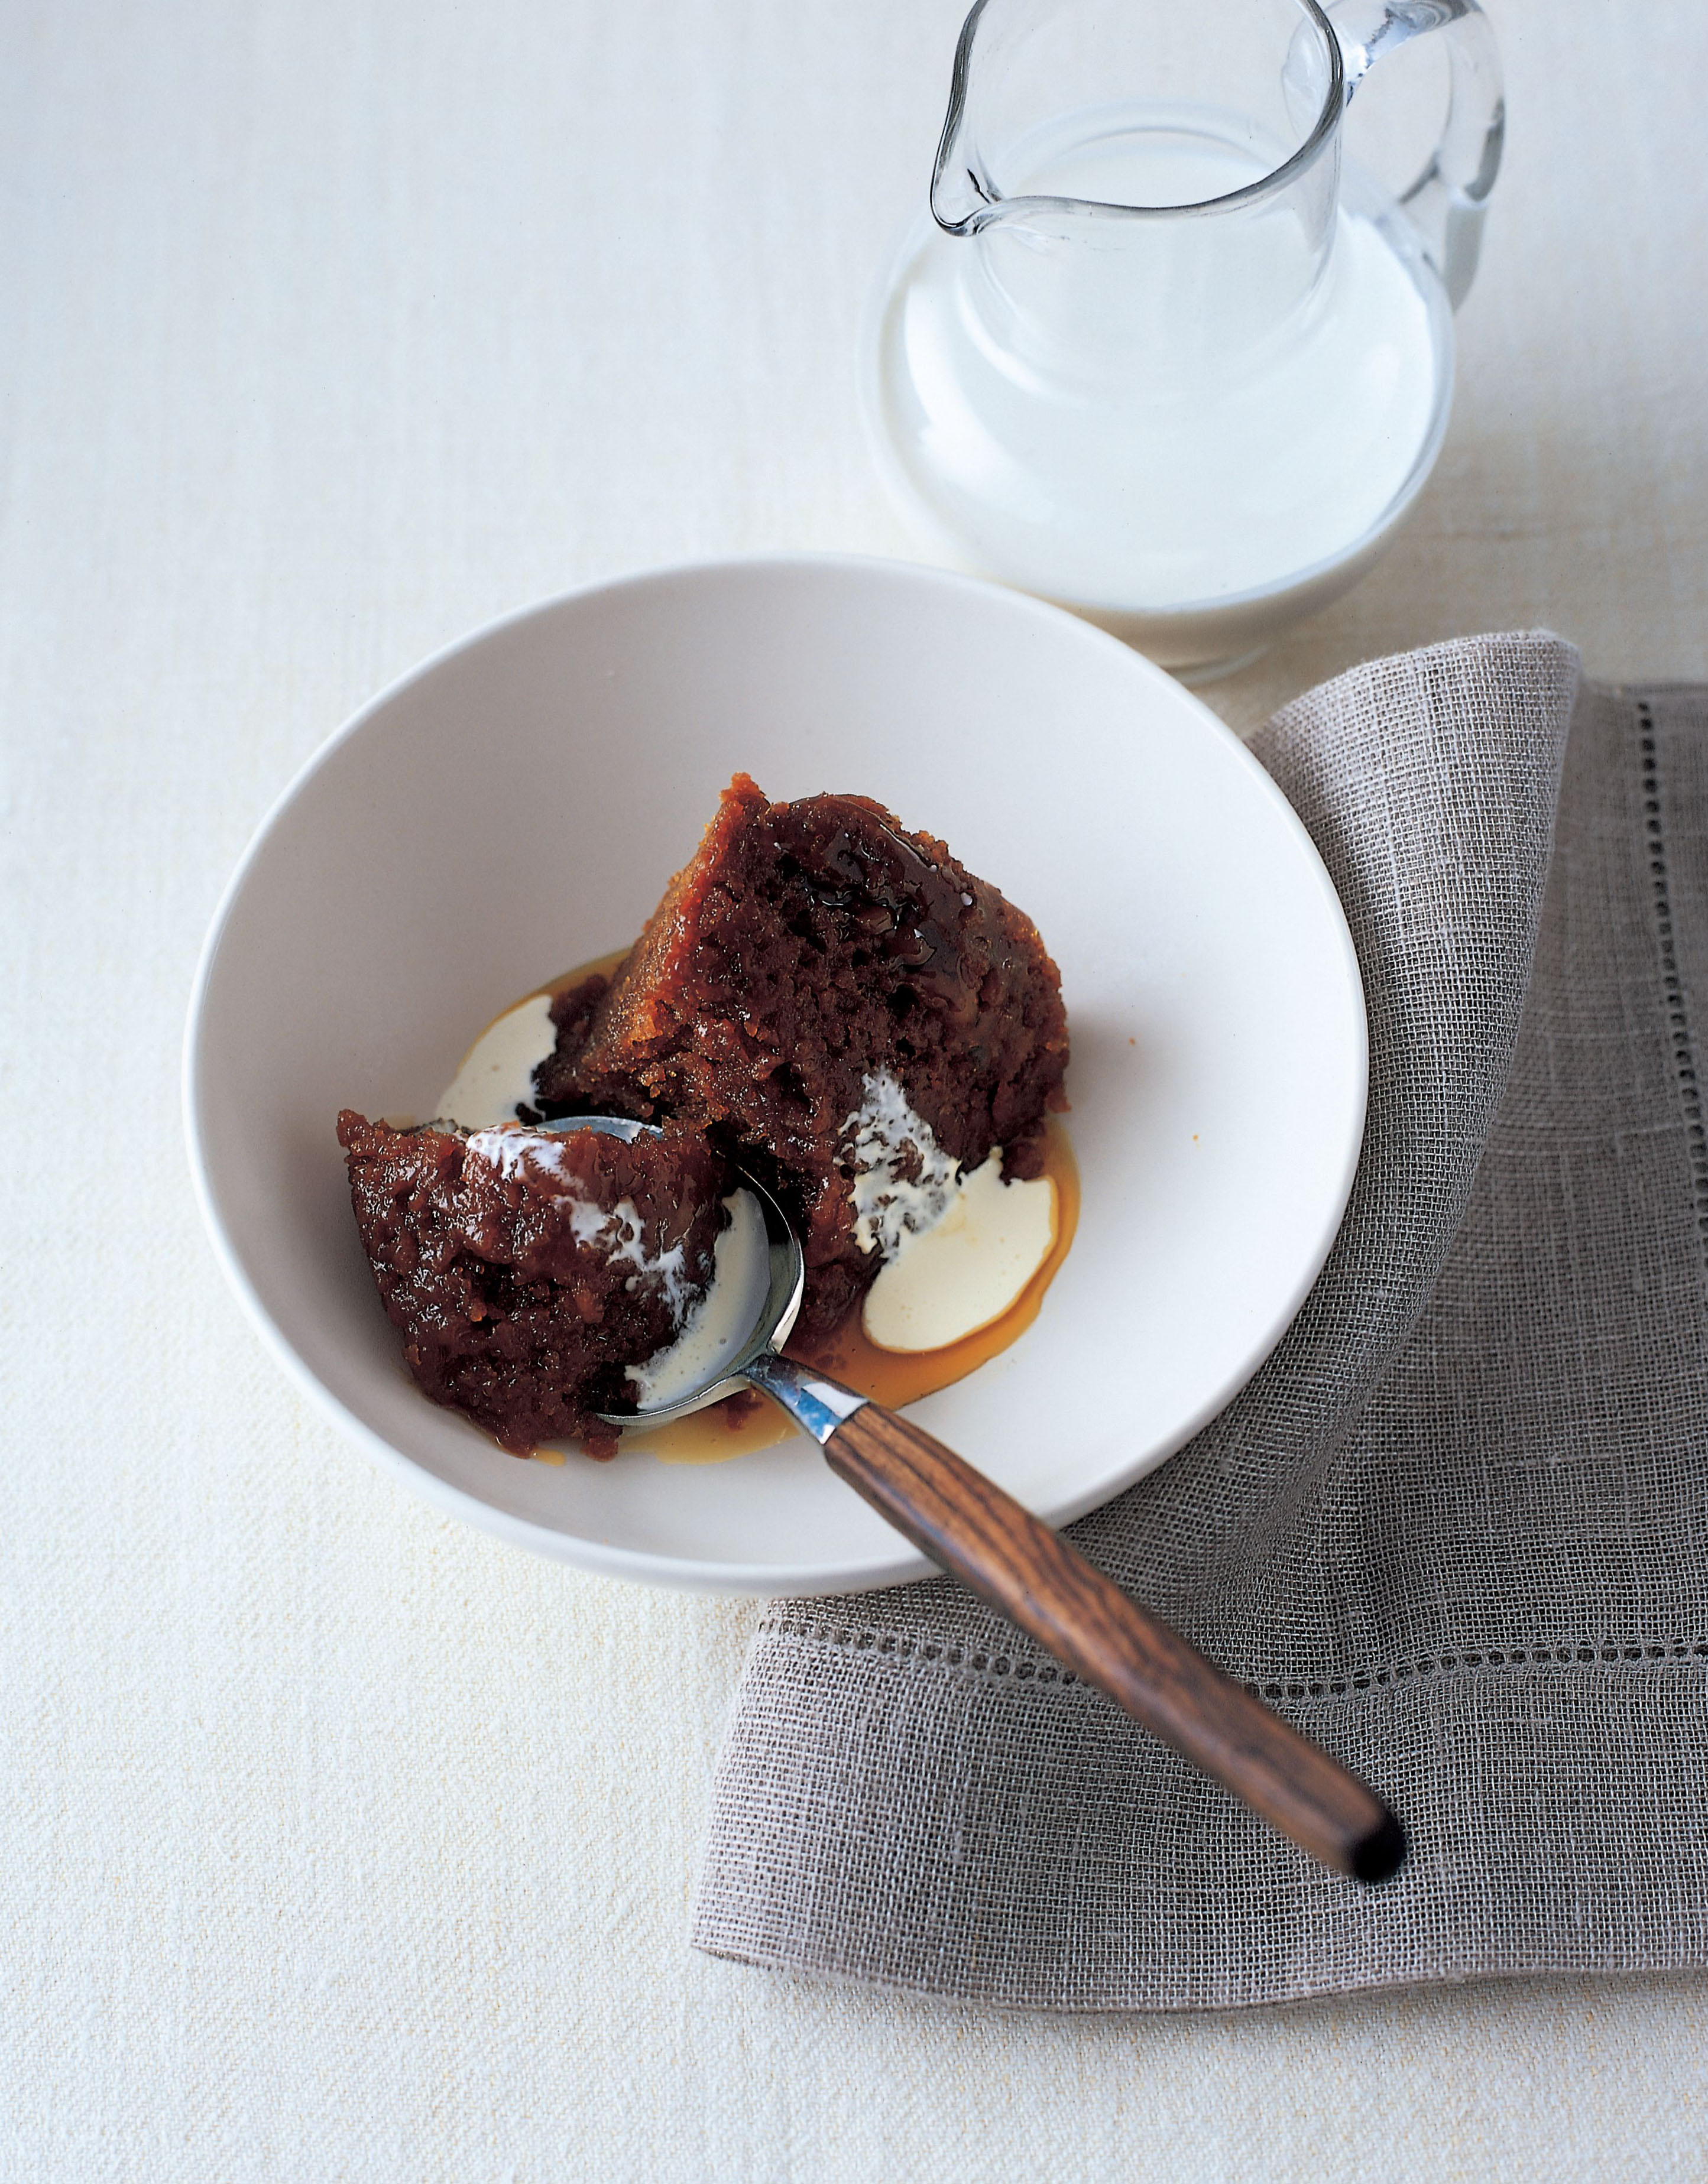 Steamed treacle sponge pudding